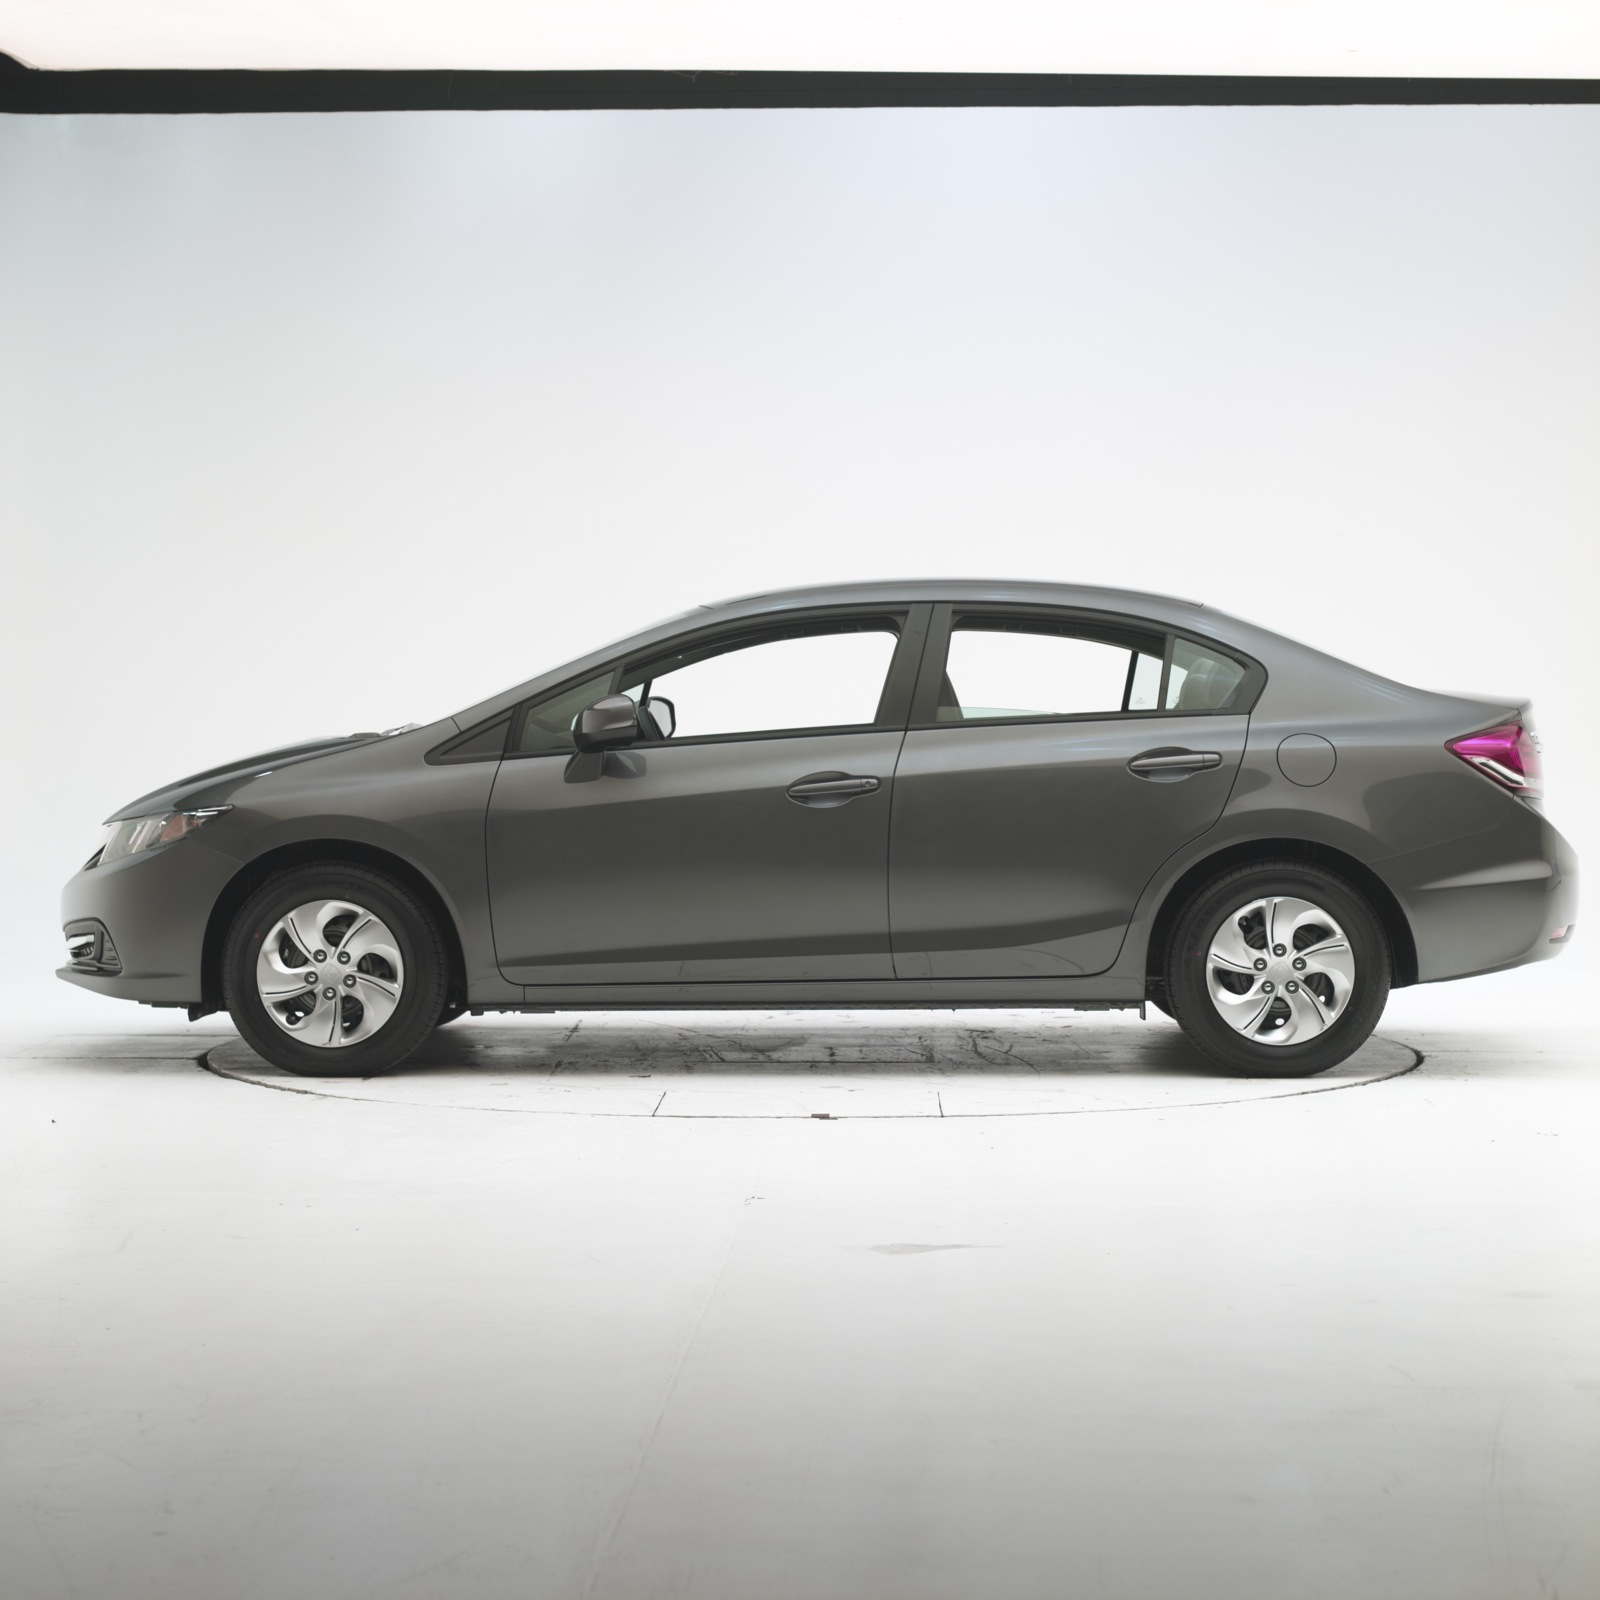 2013 Honda Civic Good In Iihs Small Overlap Frontal Test